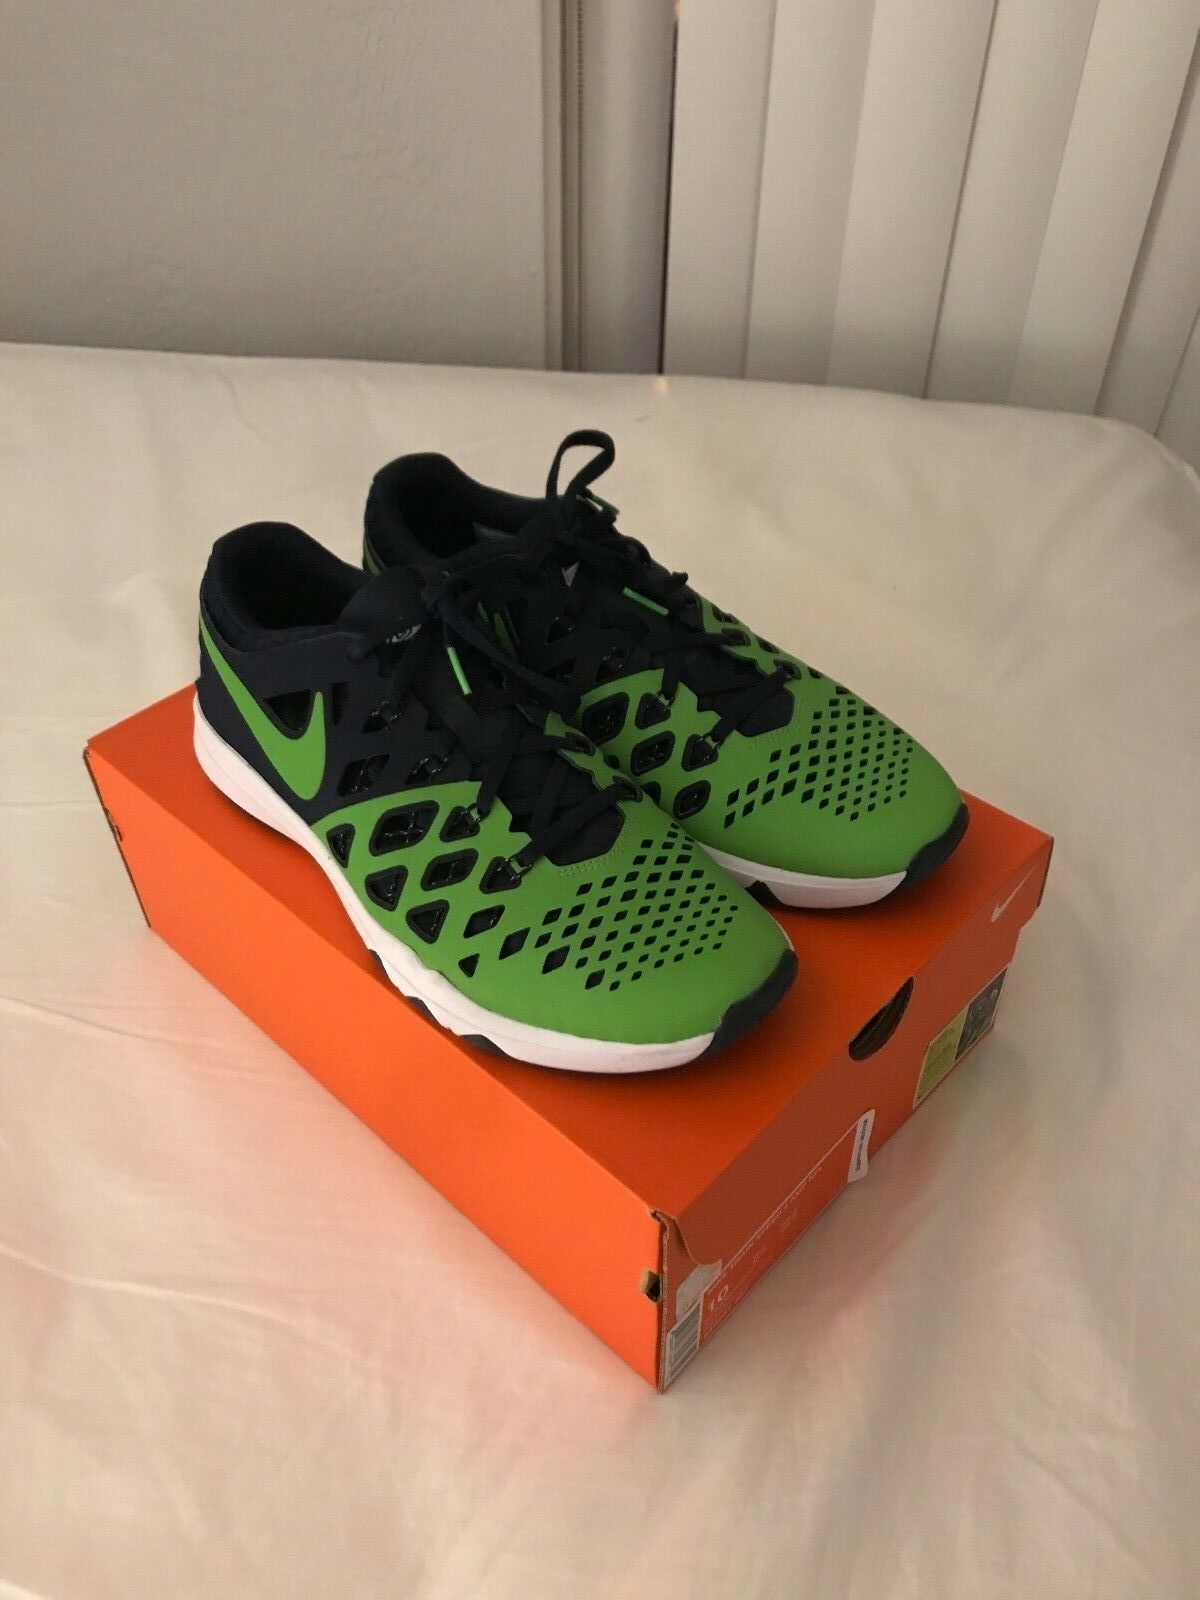 Men's Nike Trainer Speed 4 AMP shoes NFL - Seattle Seahawks - size 10